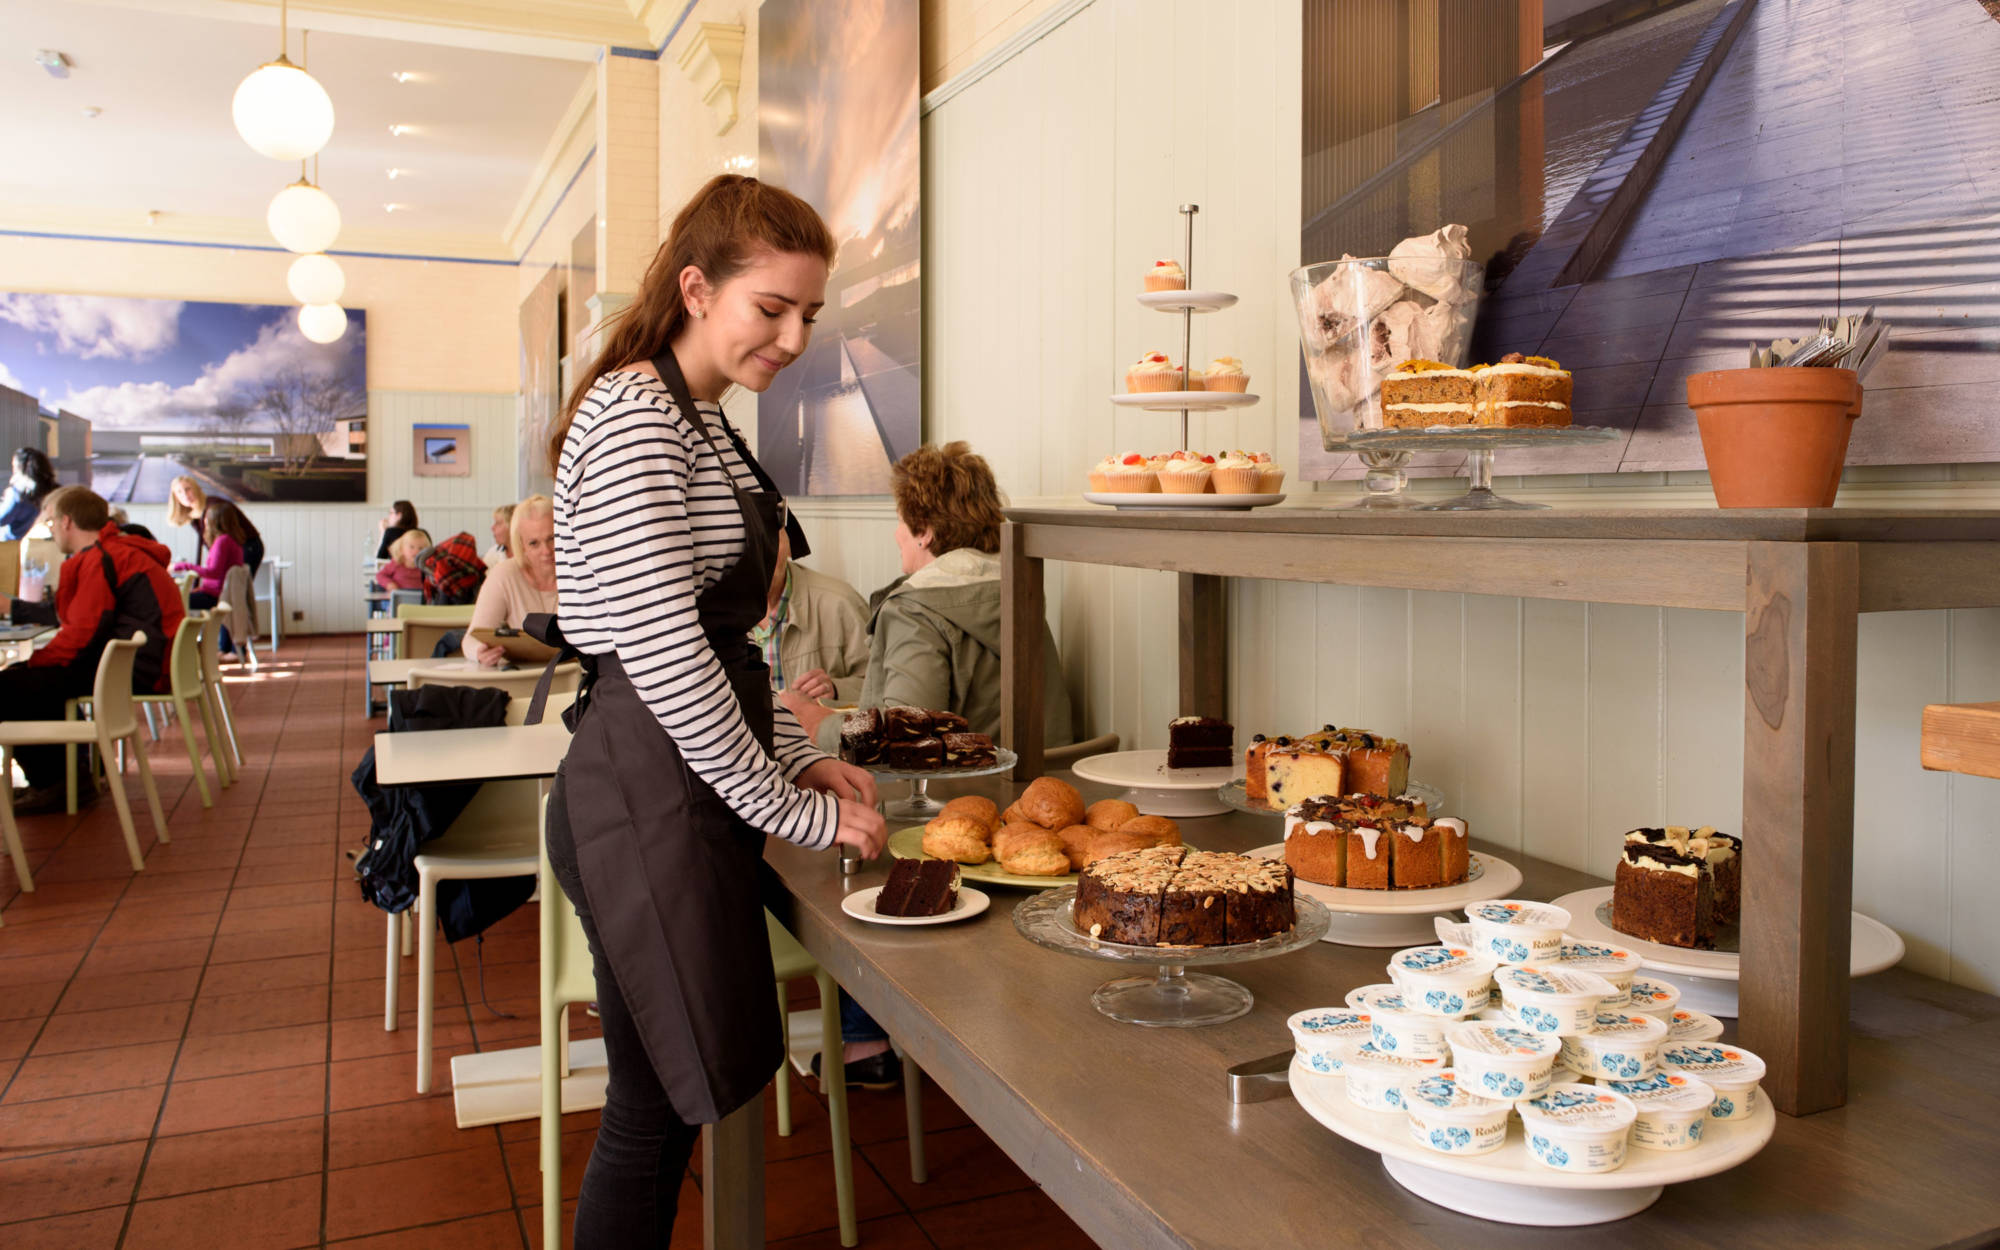 Stables cafe cakes staff